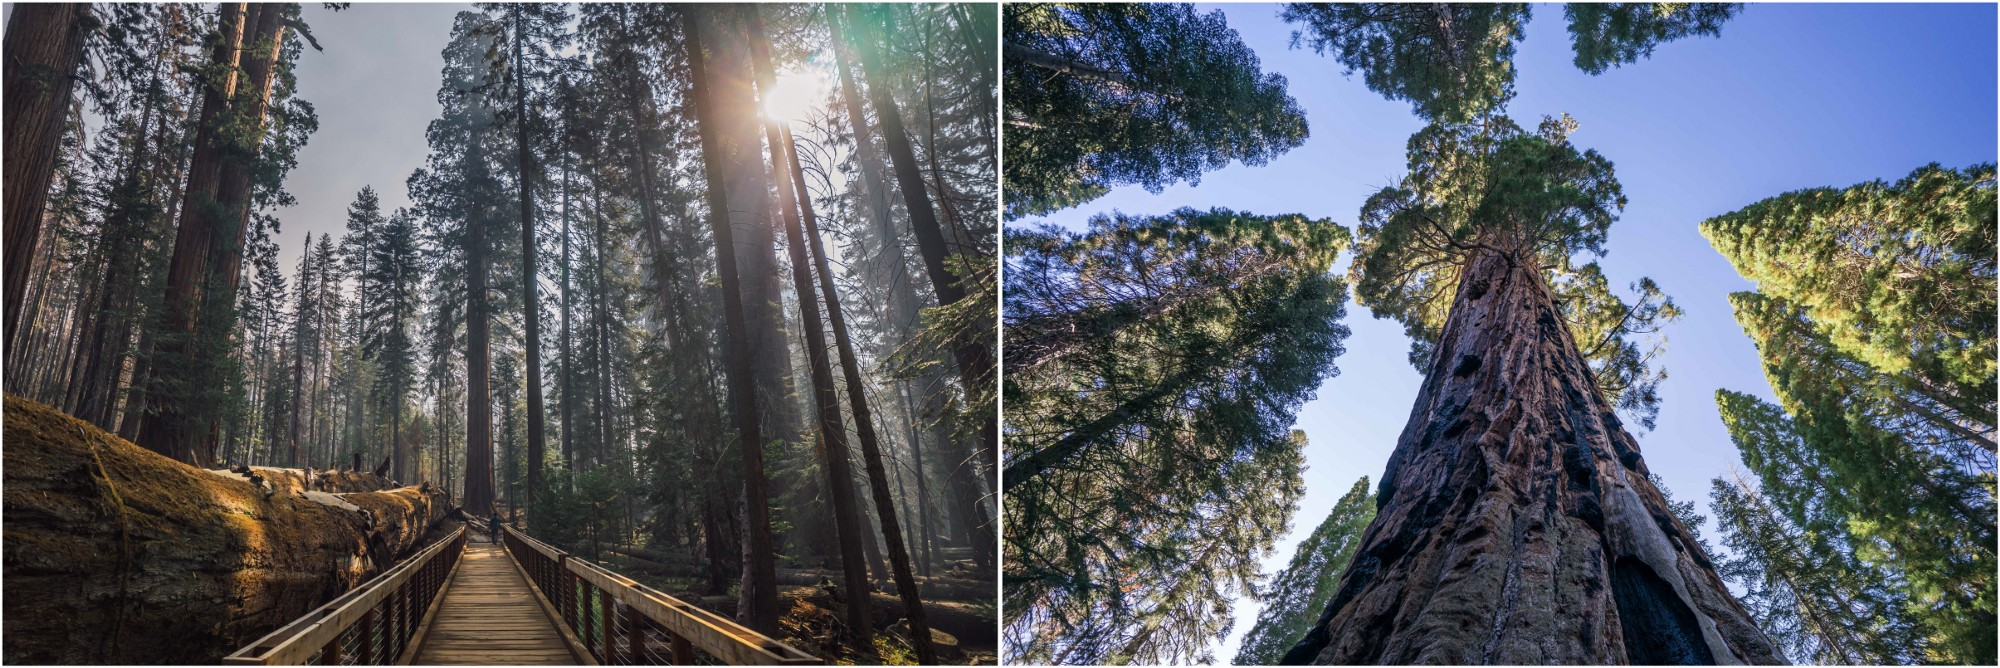 - Left: The morning light filters the smoke from nearby wildfires along the Trail of 100 Giants, in Giant Sequoia National Monument. Right: The Boole Tree in the Converse Basin Grove.